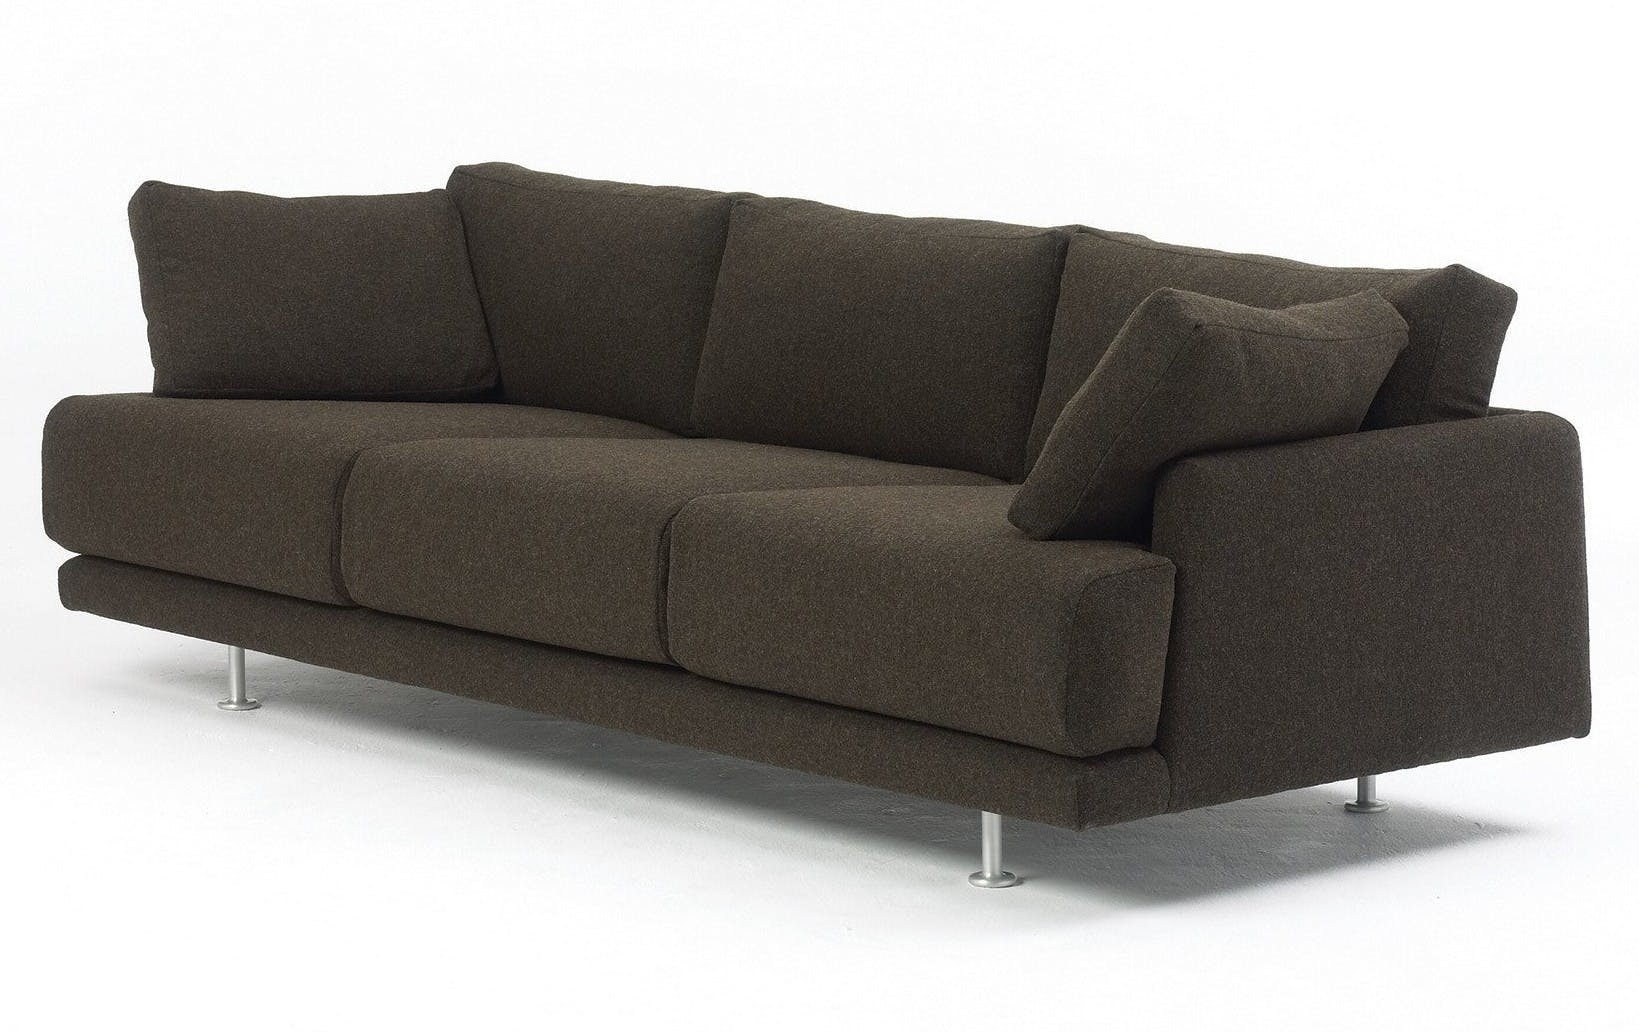 Scp-furniture-haggerston-sofa-dark-left-angle-haute-living